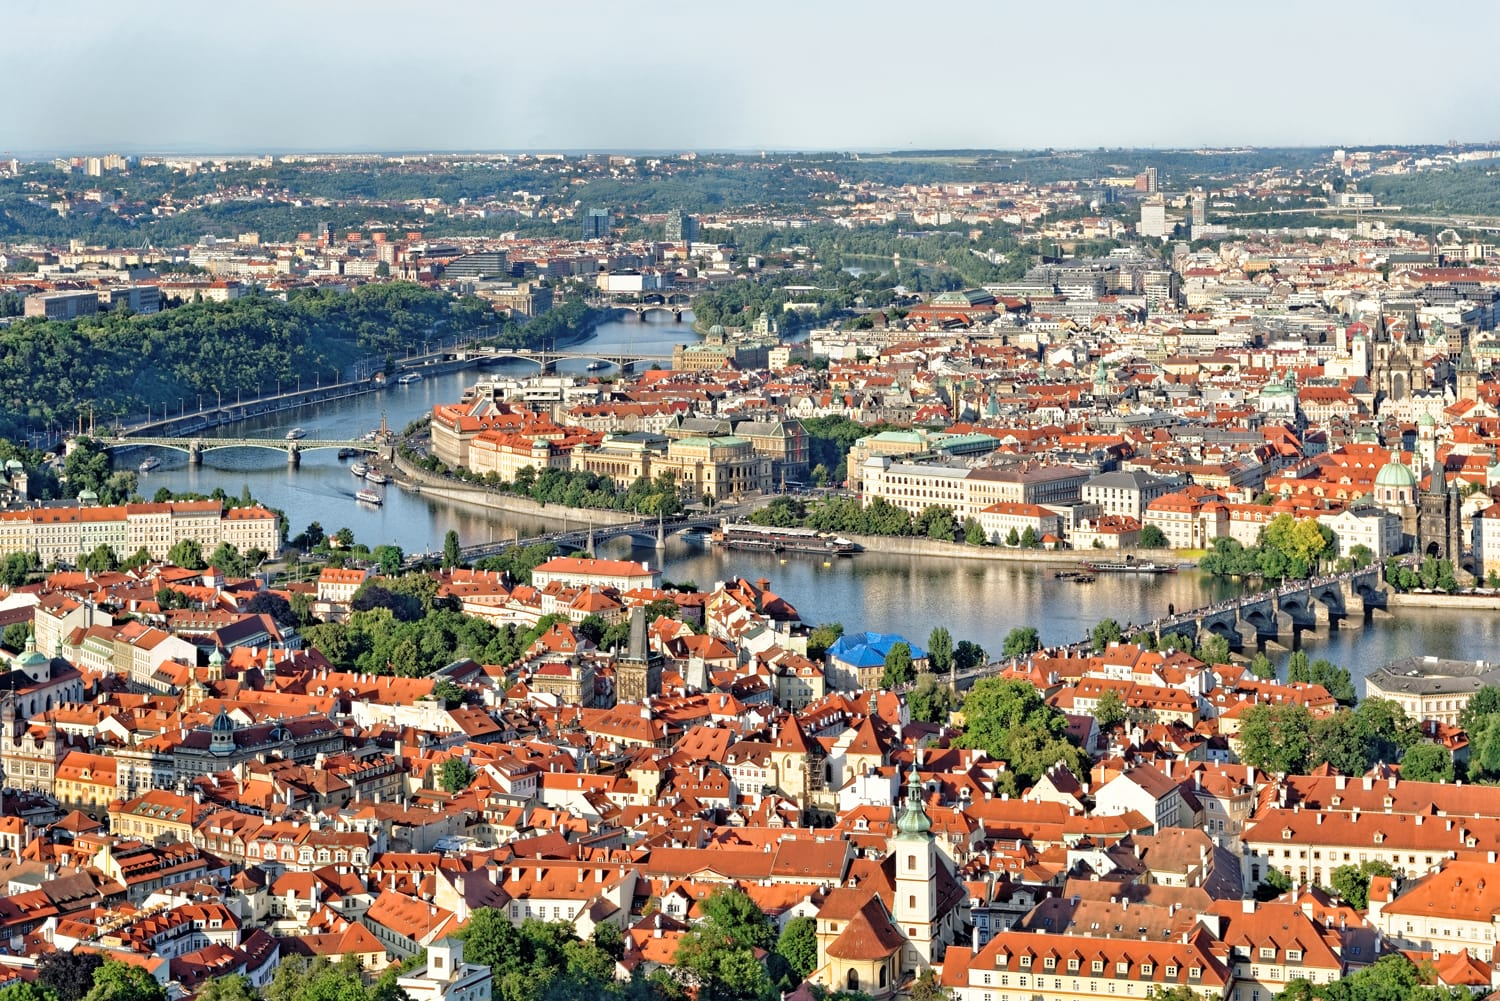 Aerial view of Prague, Czech Republic from Petrin Hill Observation Tower.